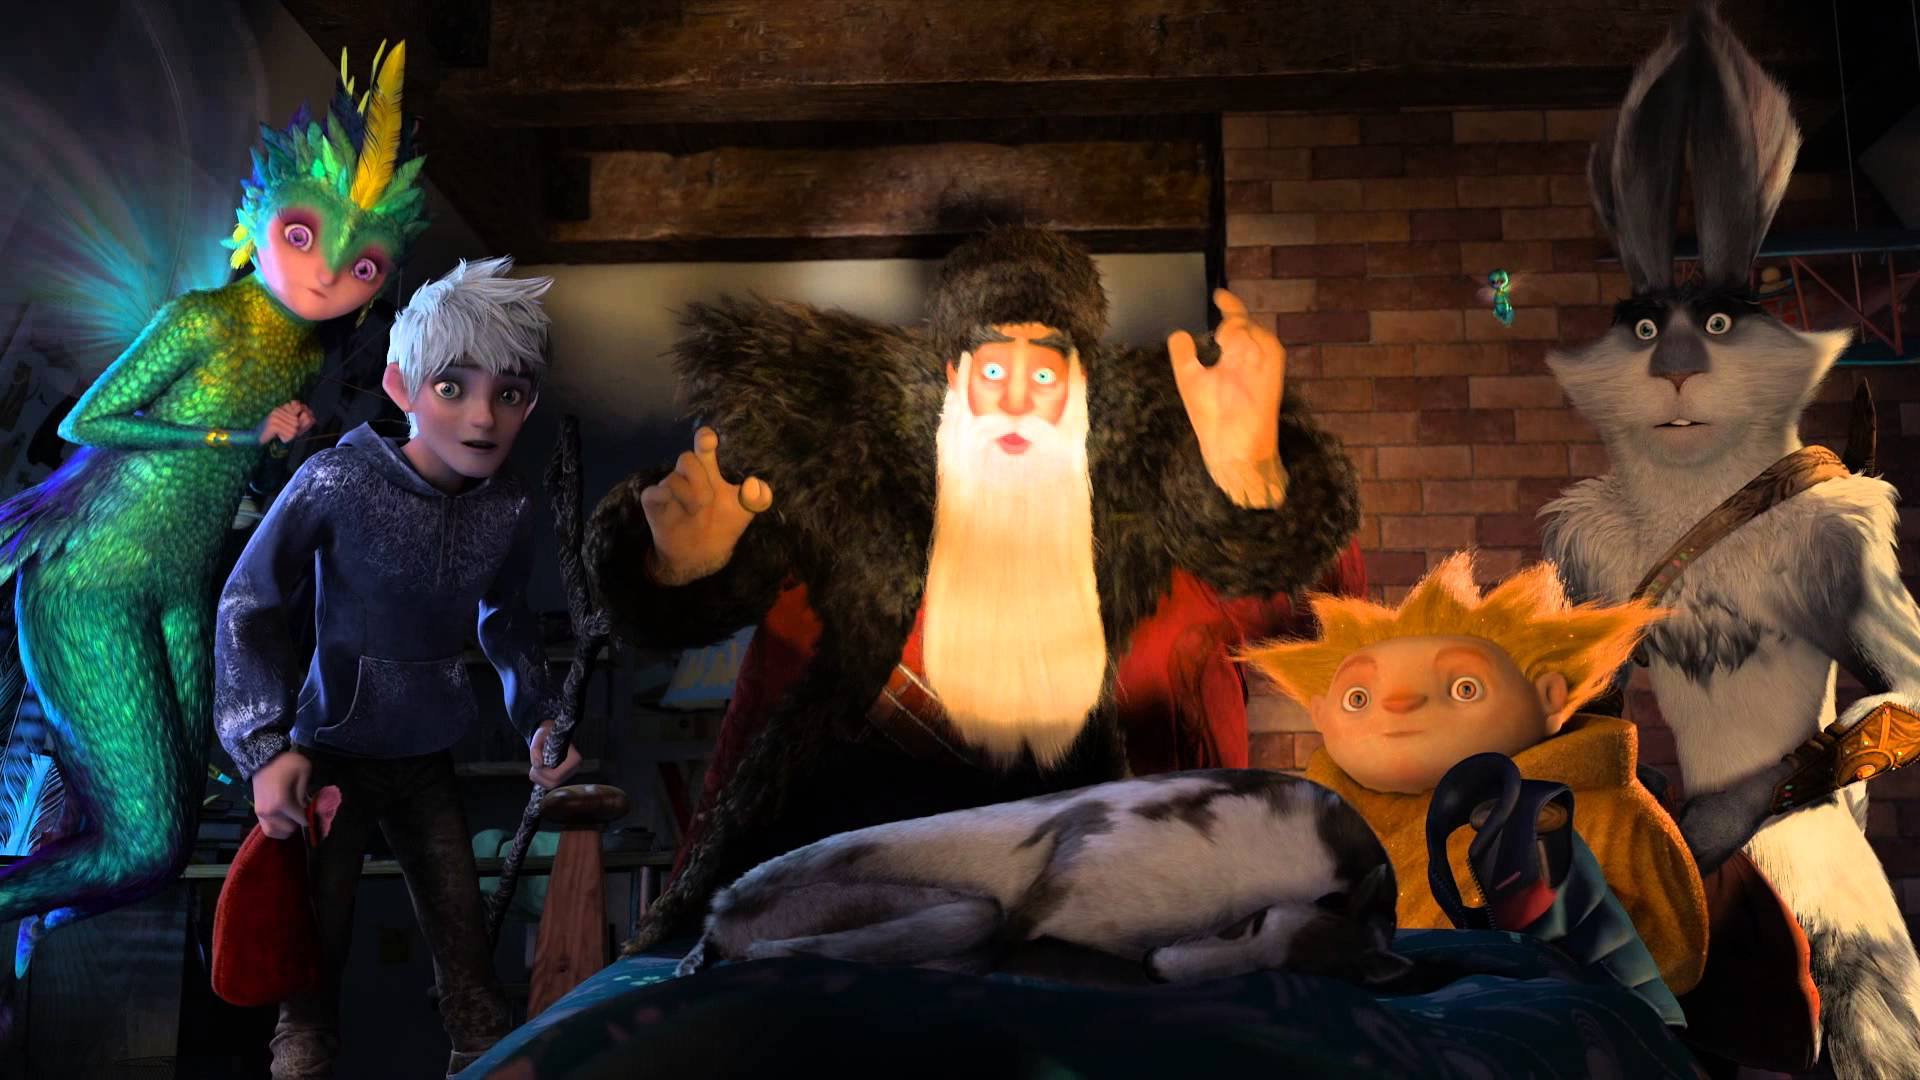 Rise Of The Guardians 2012 Watch Online In Best Quality